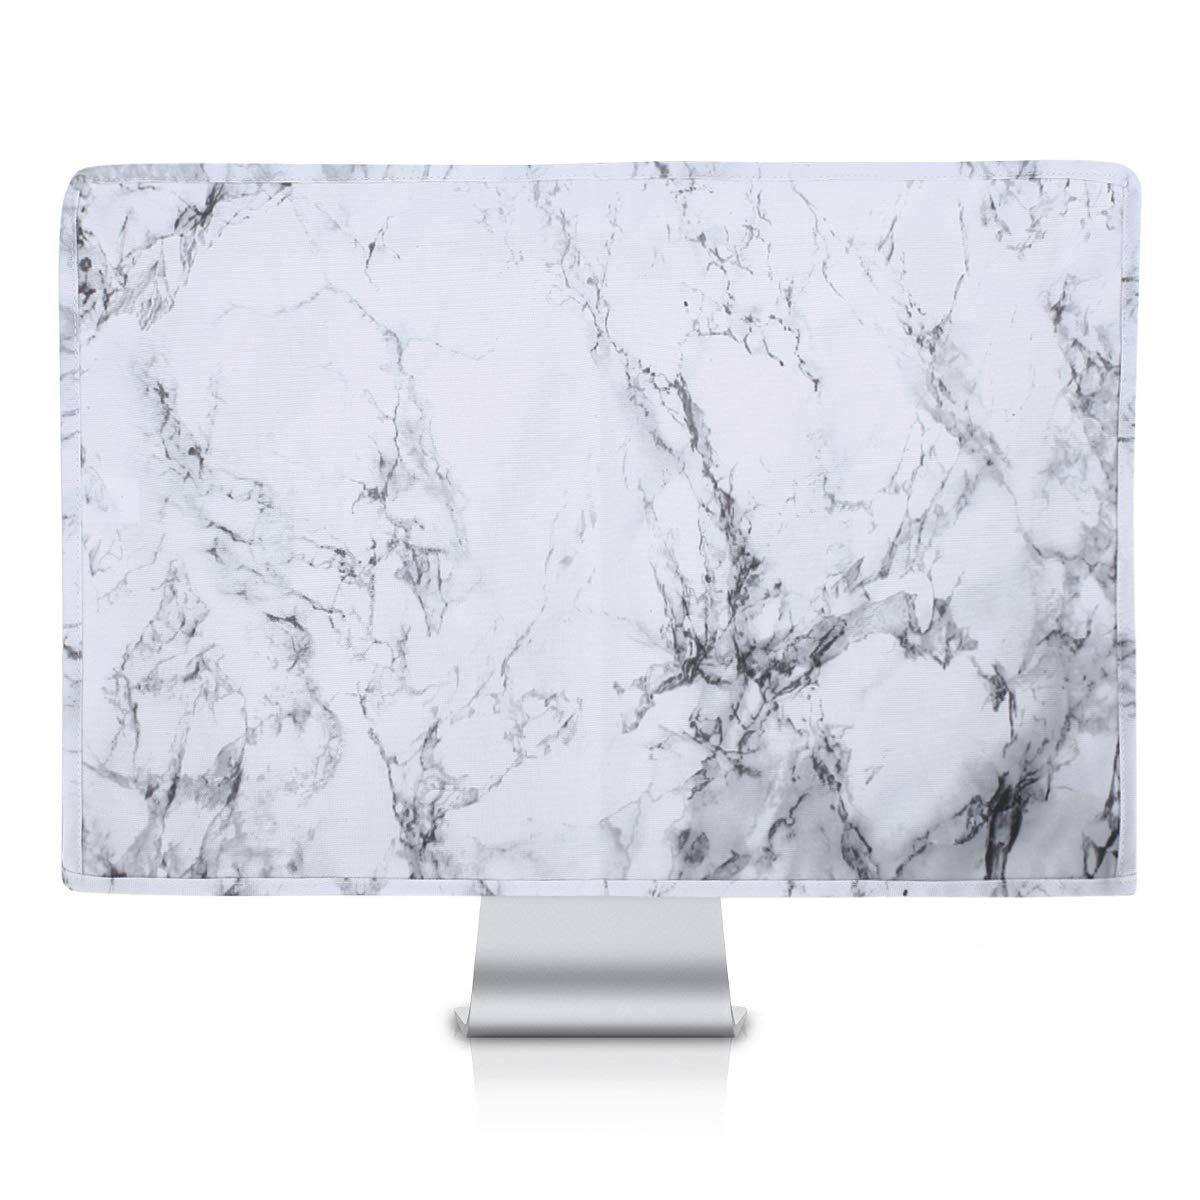 33 MOSISO Monitor Dust Cover 32 35 Inch Anti-Static Polyester LCD//LED//HD Panel Case Screen Dispaly Protective Sleeve Compatible 32-34 Inch iMac 34 PC Space Gray Desktop Computer and TV